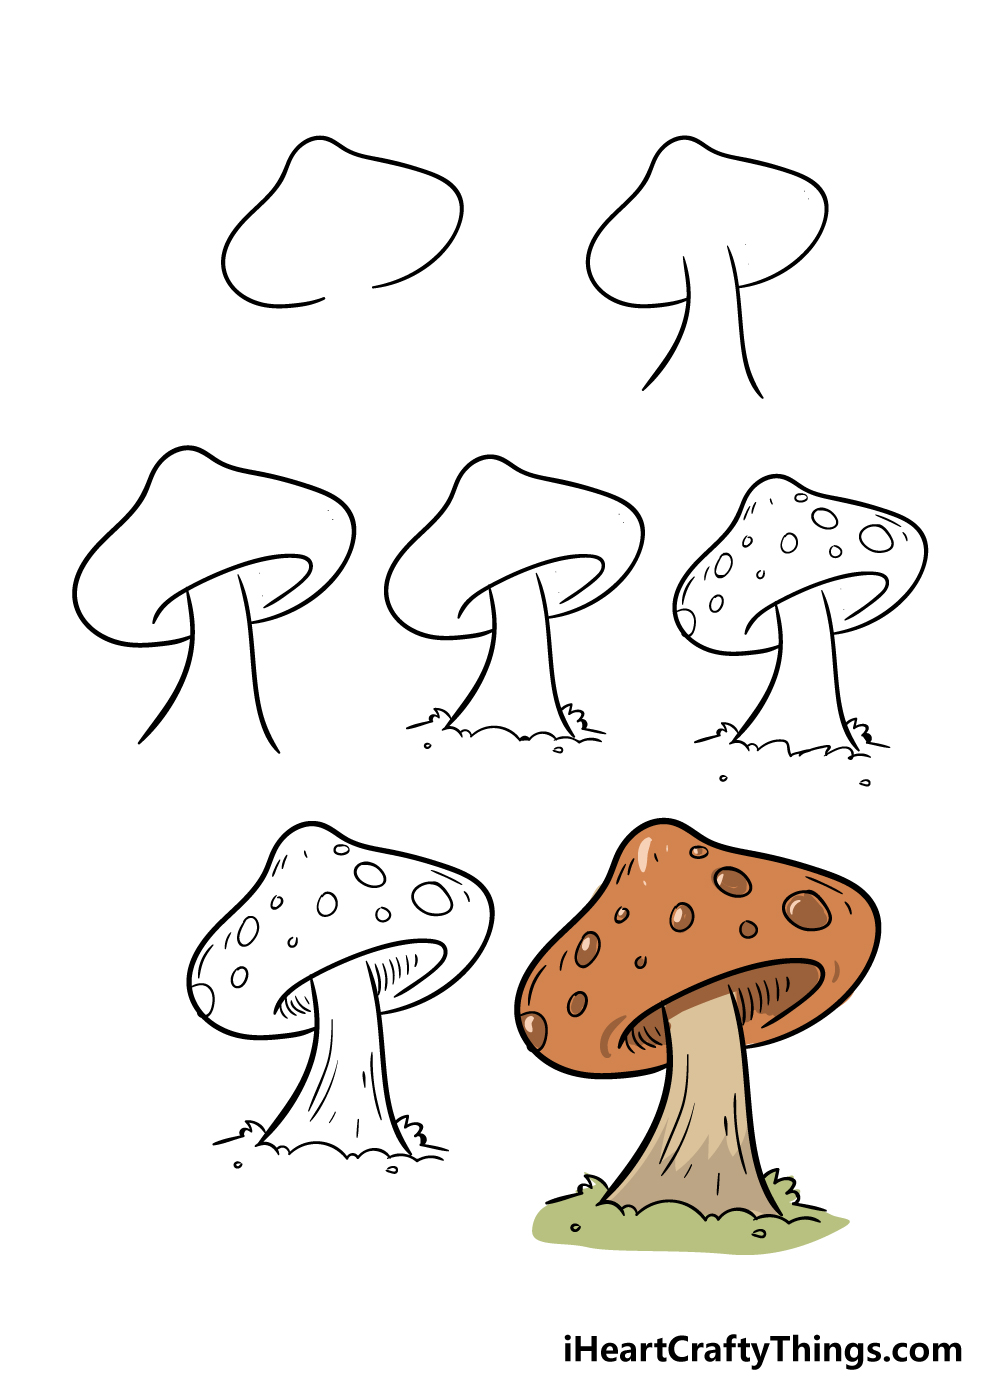 how to draw mushroom in 7 steps